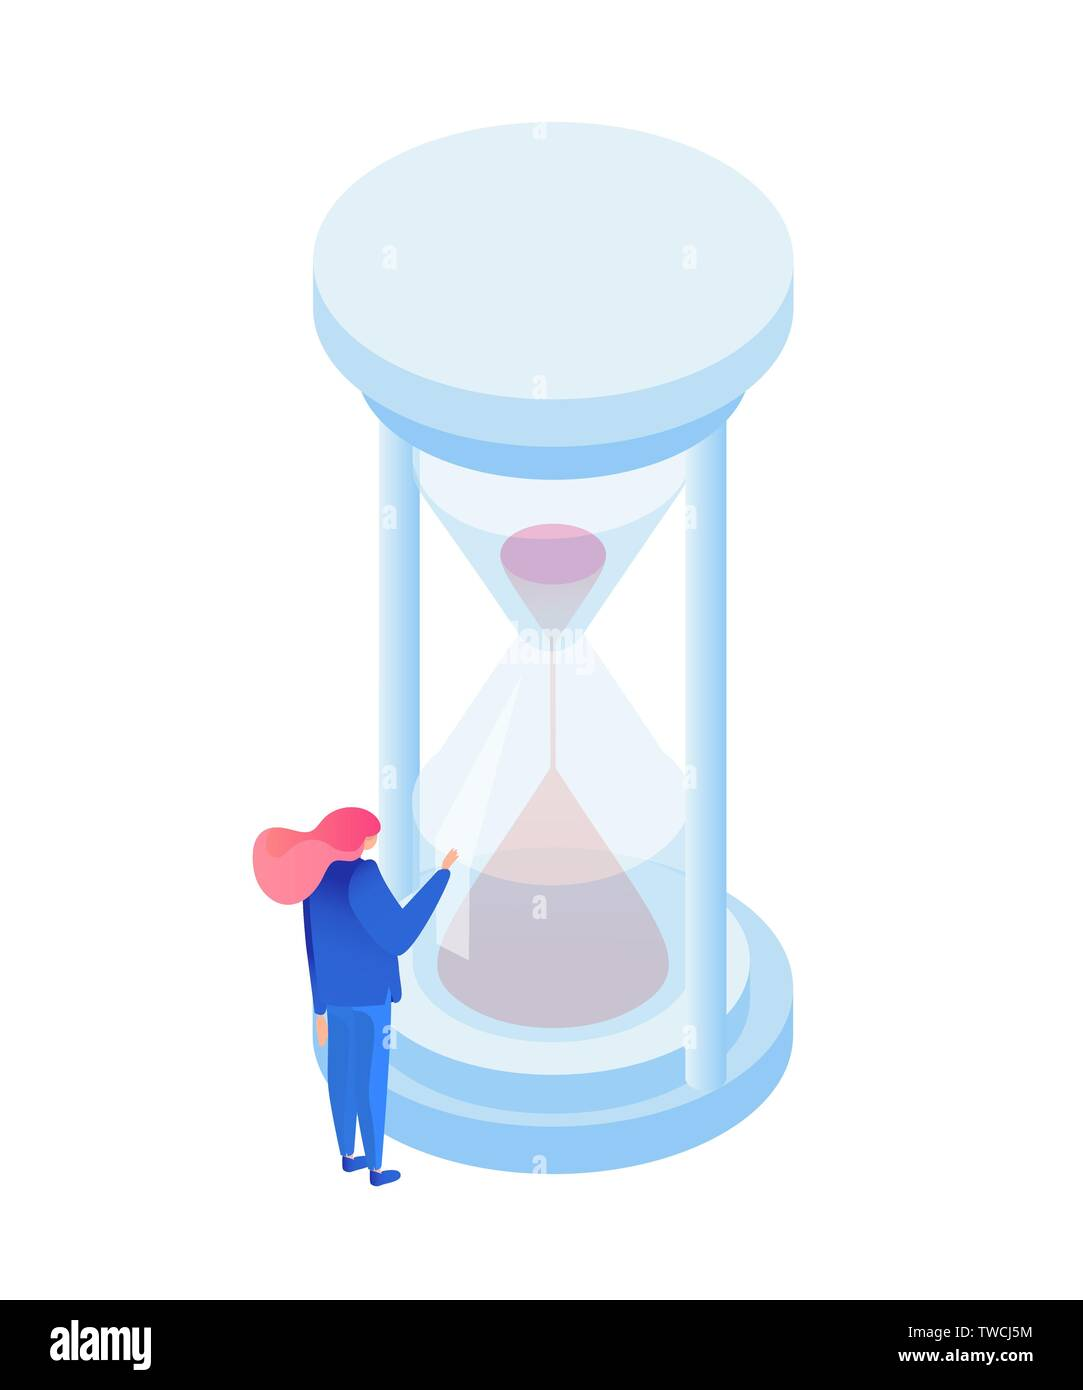 Flow of time metaphor isometric illustration. Time management expert watching sand in hourglass isolated character. Antique sandglass measuring hours, counting minutes to deadlines - Stock Image